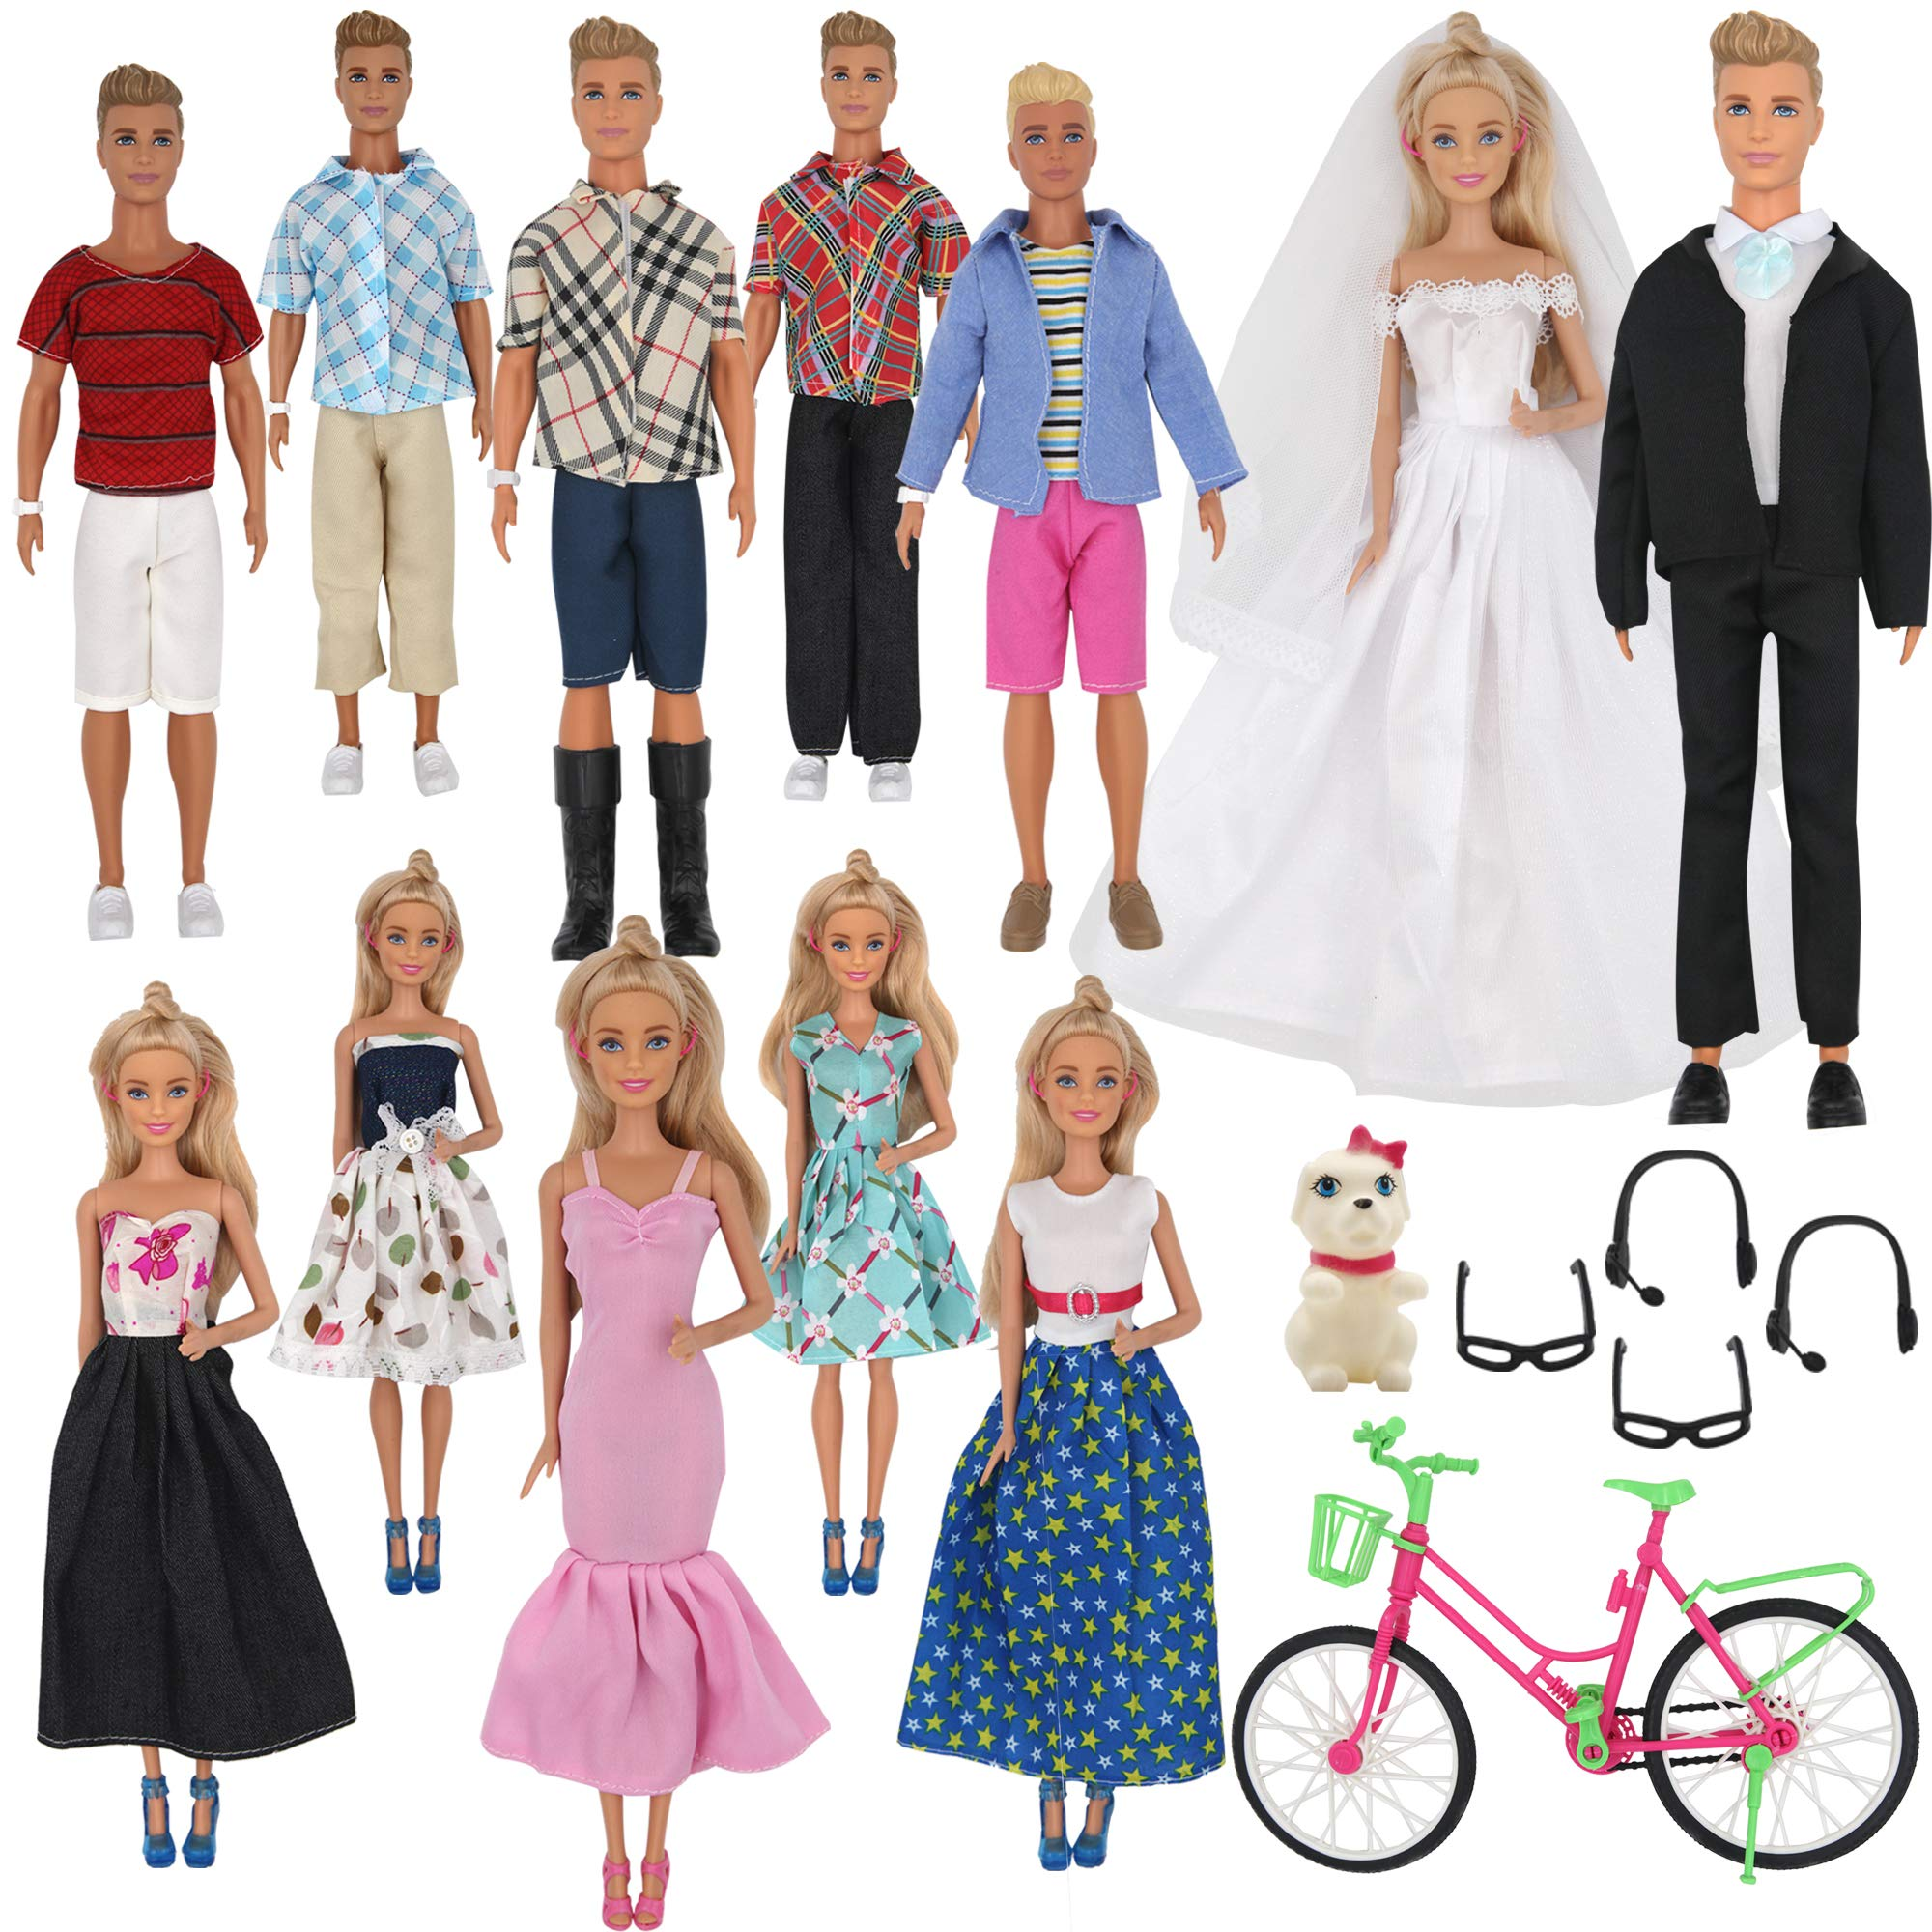 ZTWEDEN 33Pcs Doll Clothes and Accessories for Ken Dolls and Barbie Dolls Includes 20 Wear Clothes Shirt Jeans Suit and Wedding Dresses,Glasses Earphones Dog and Bike for Ken Barbie Doll by ZTWEDEN